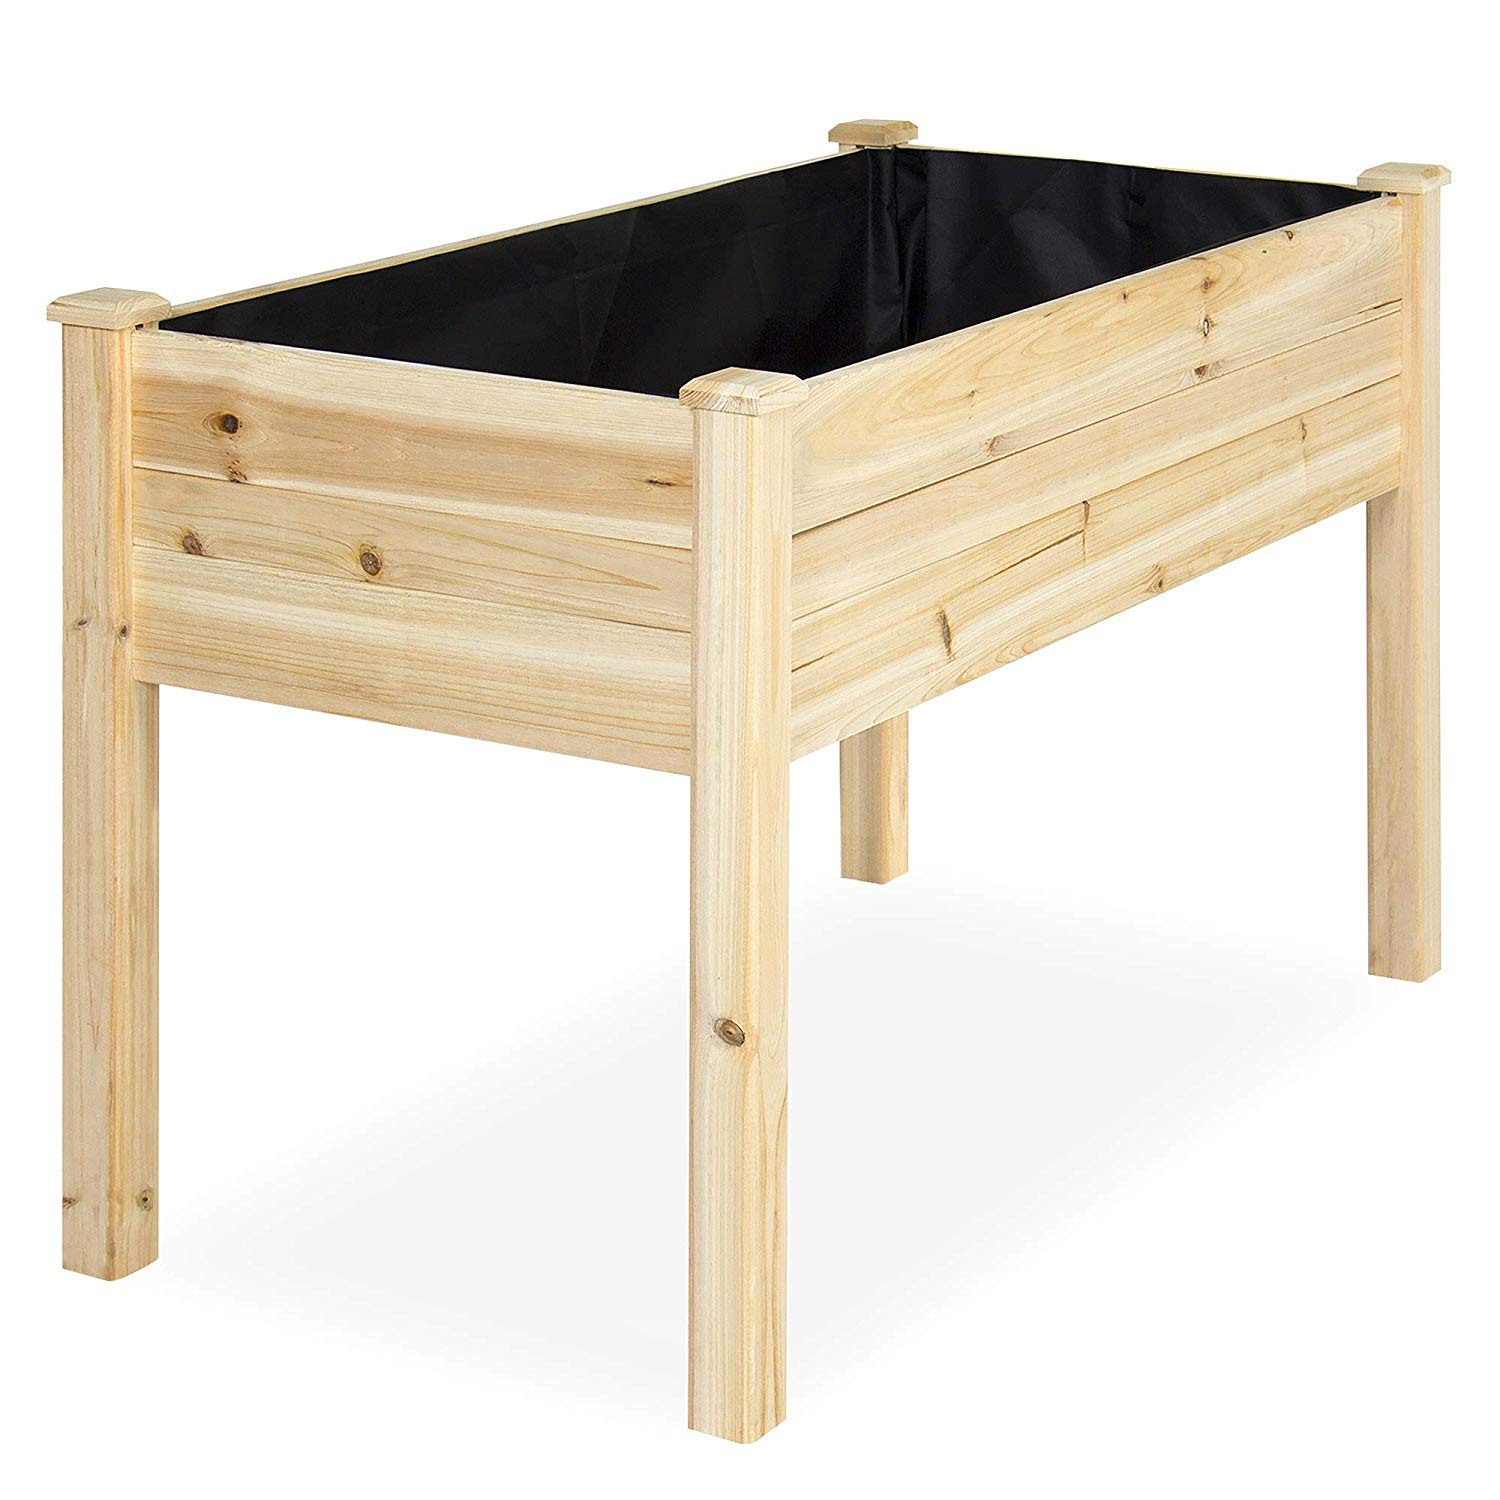 LEISURELIFE Raised Garden Bed Planter with Legs Wood, 48 x 24 x 30 , Tool-Free